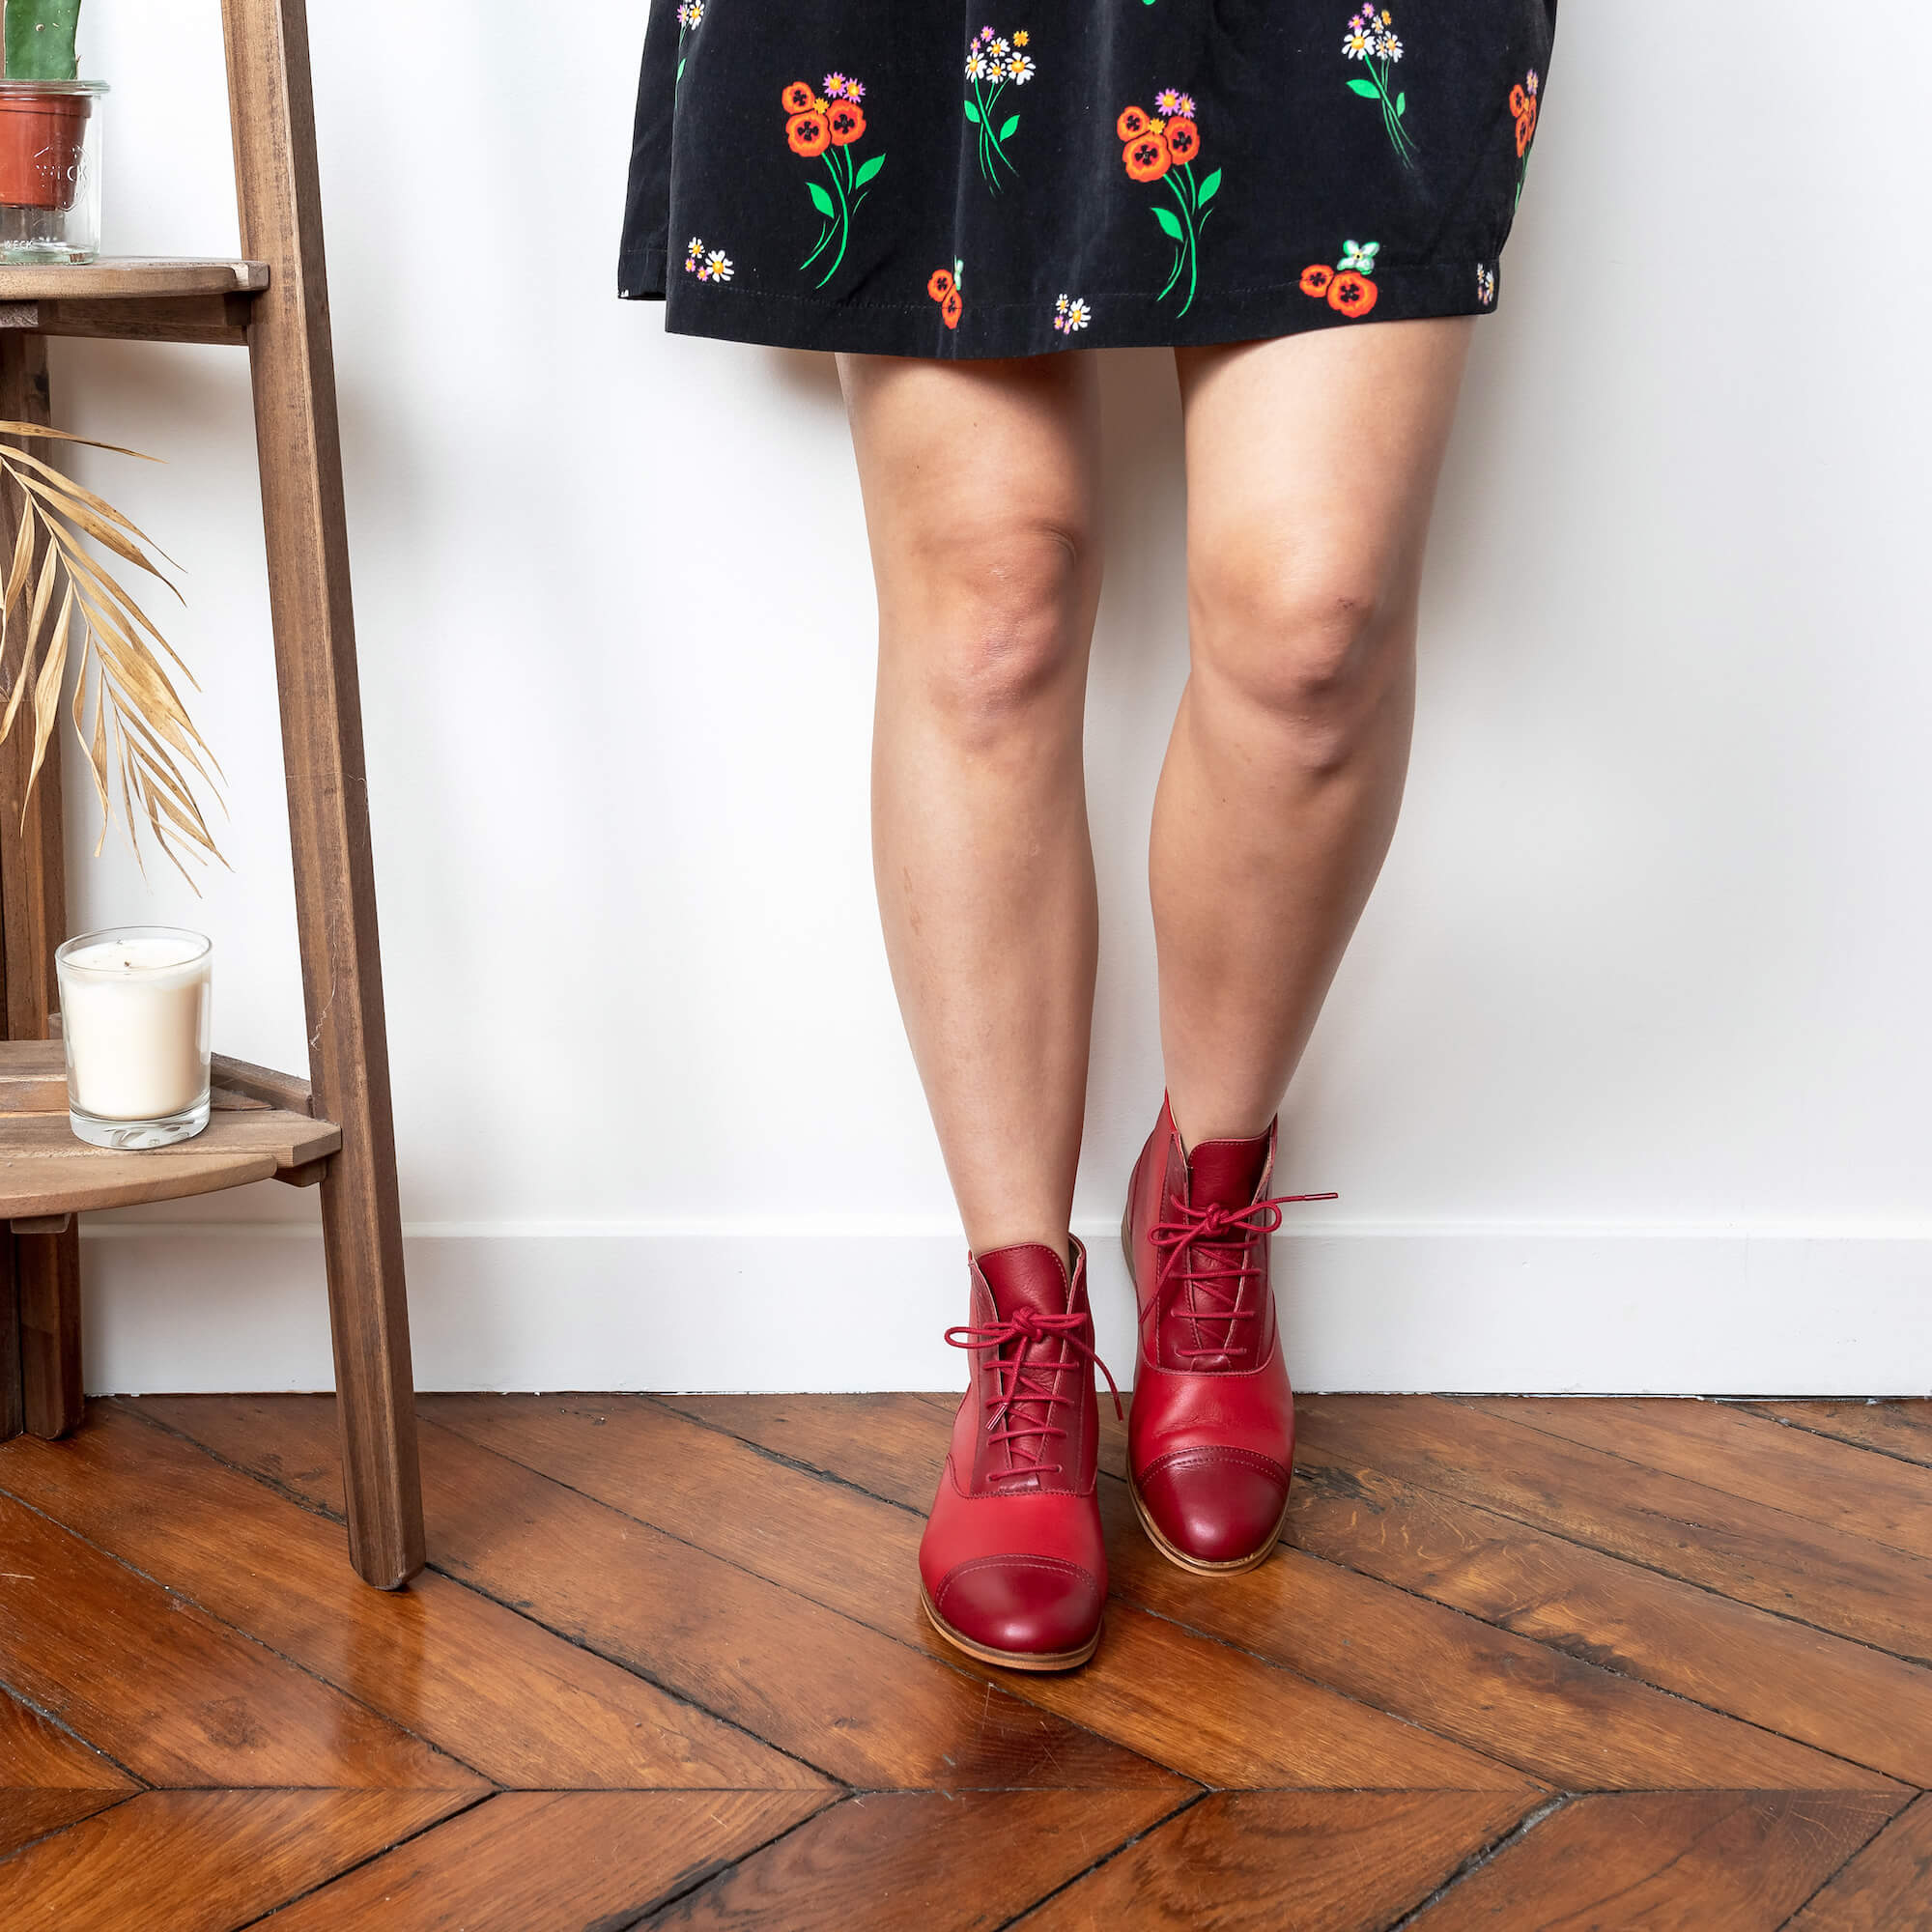 Mama Rubie Red and dark red leather boots picture